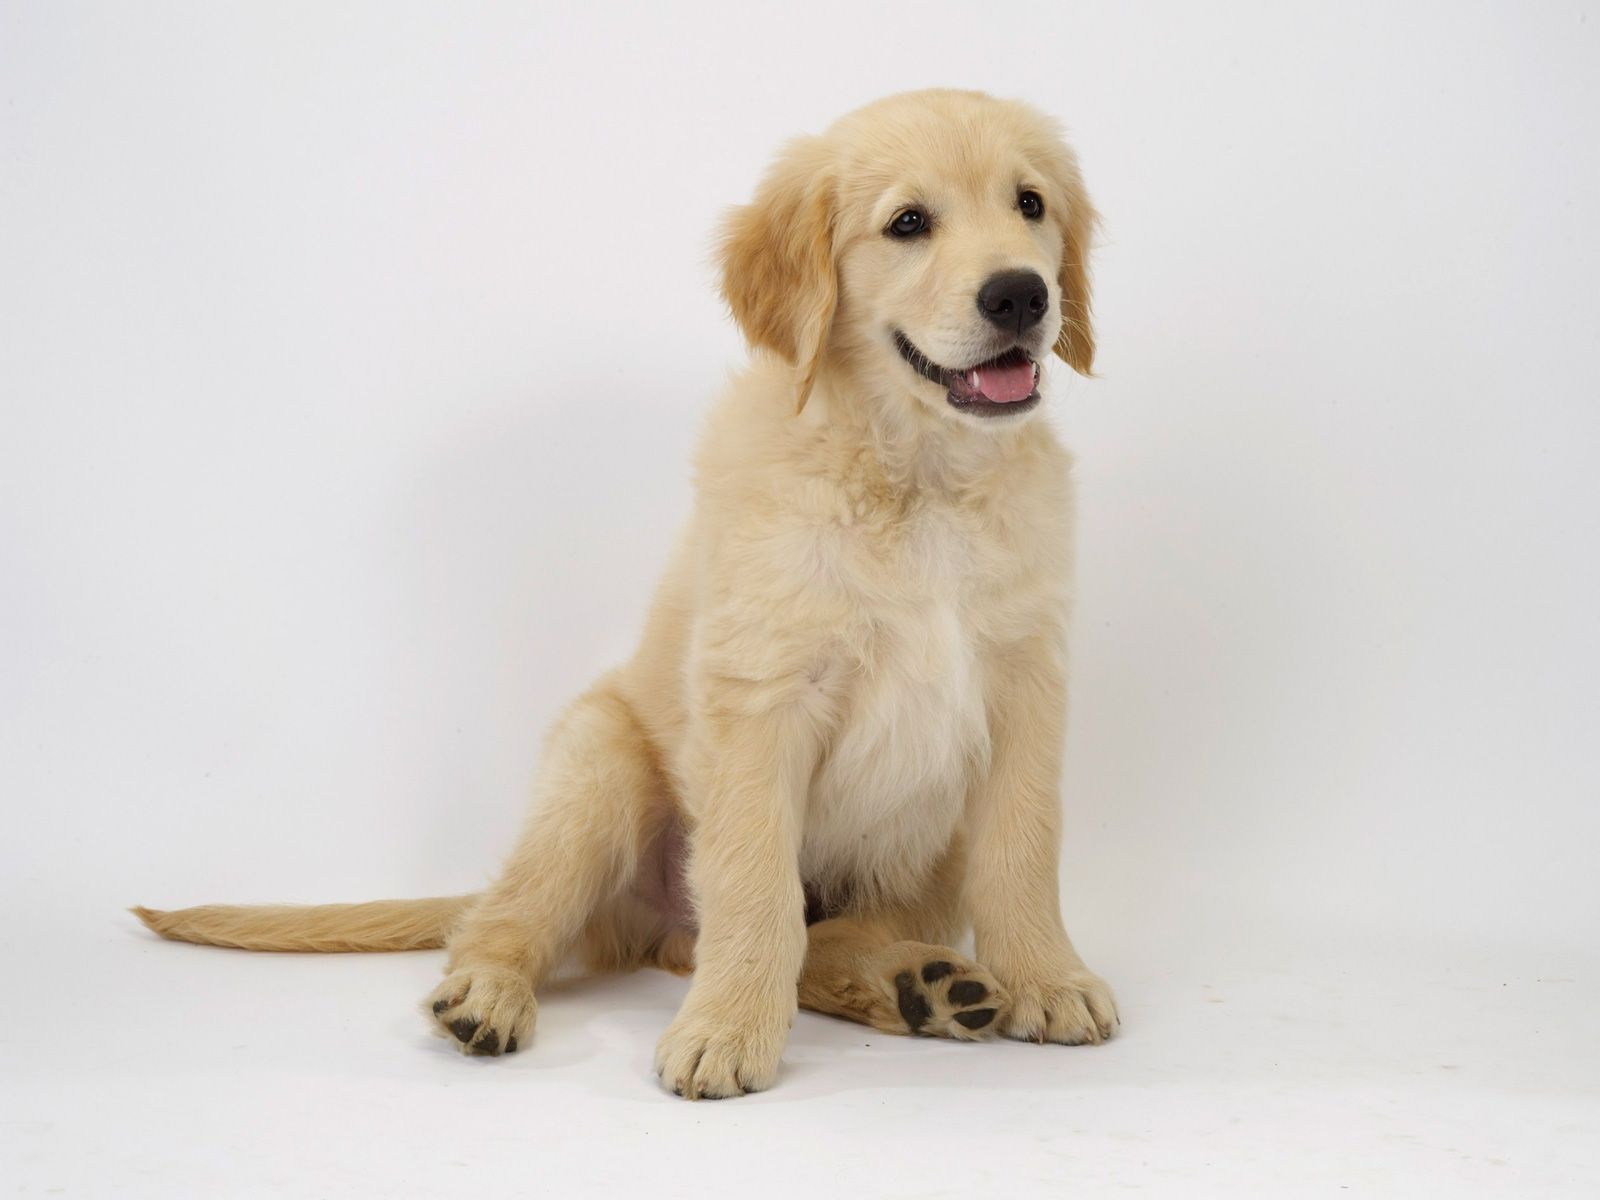 Golden Retriever Additional Info Temperament The Golden Retriever